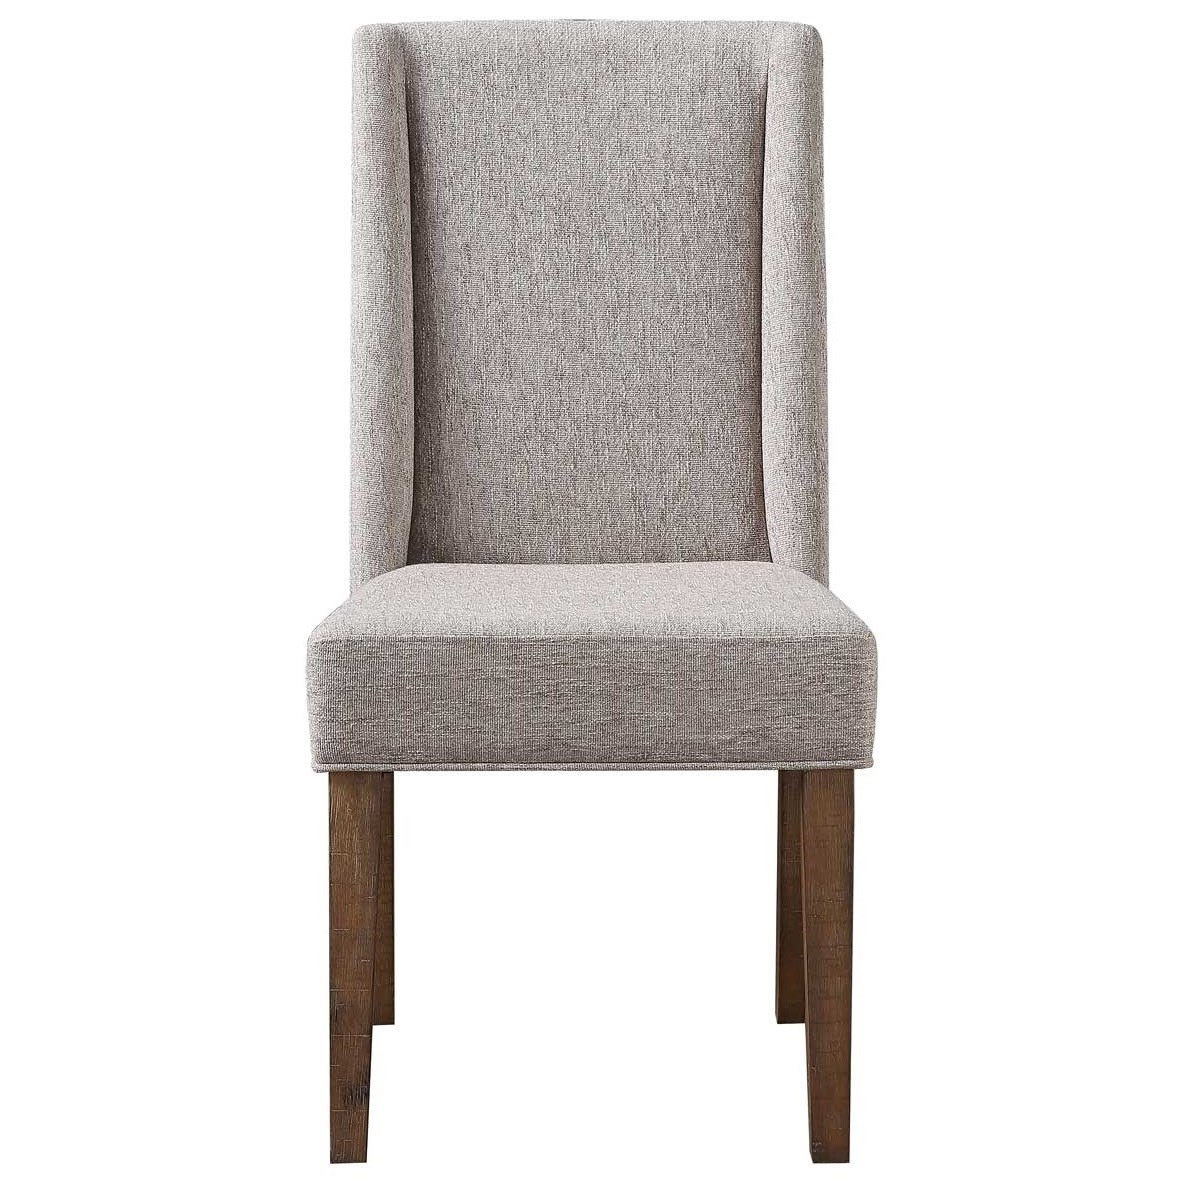 Riverdale Arm Chair by Steve Silver at Walker's Furniture